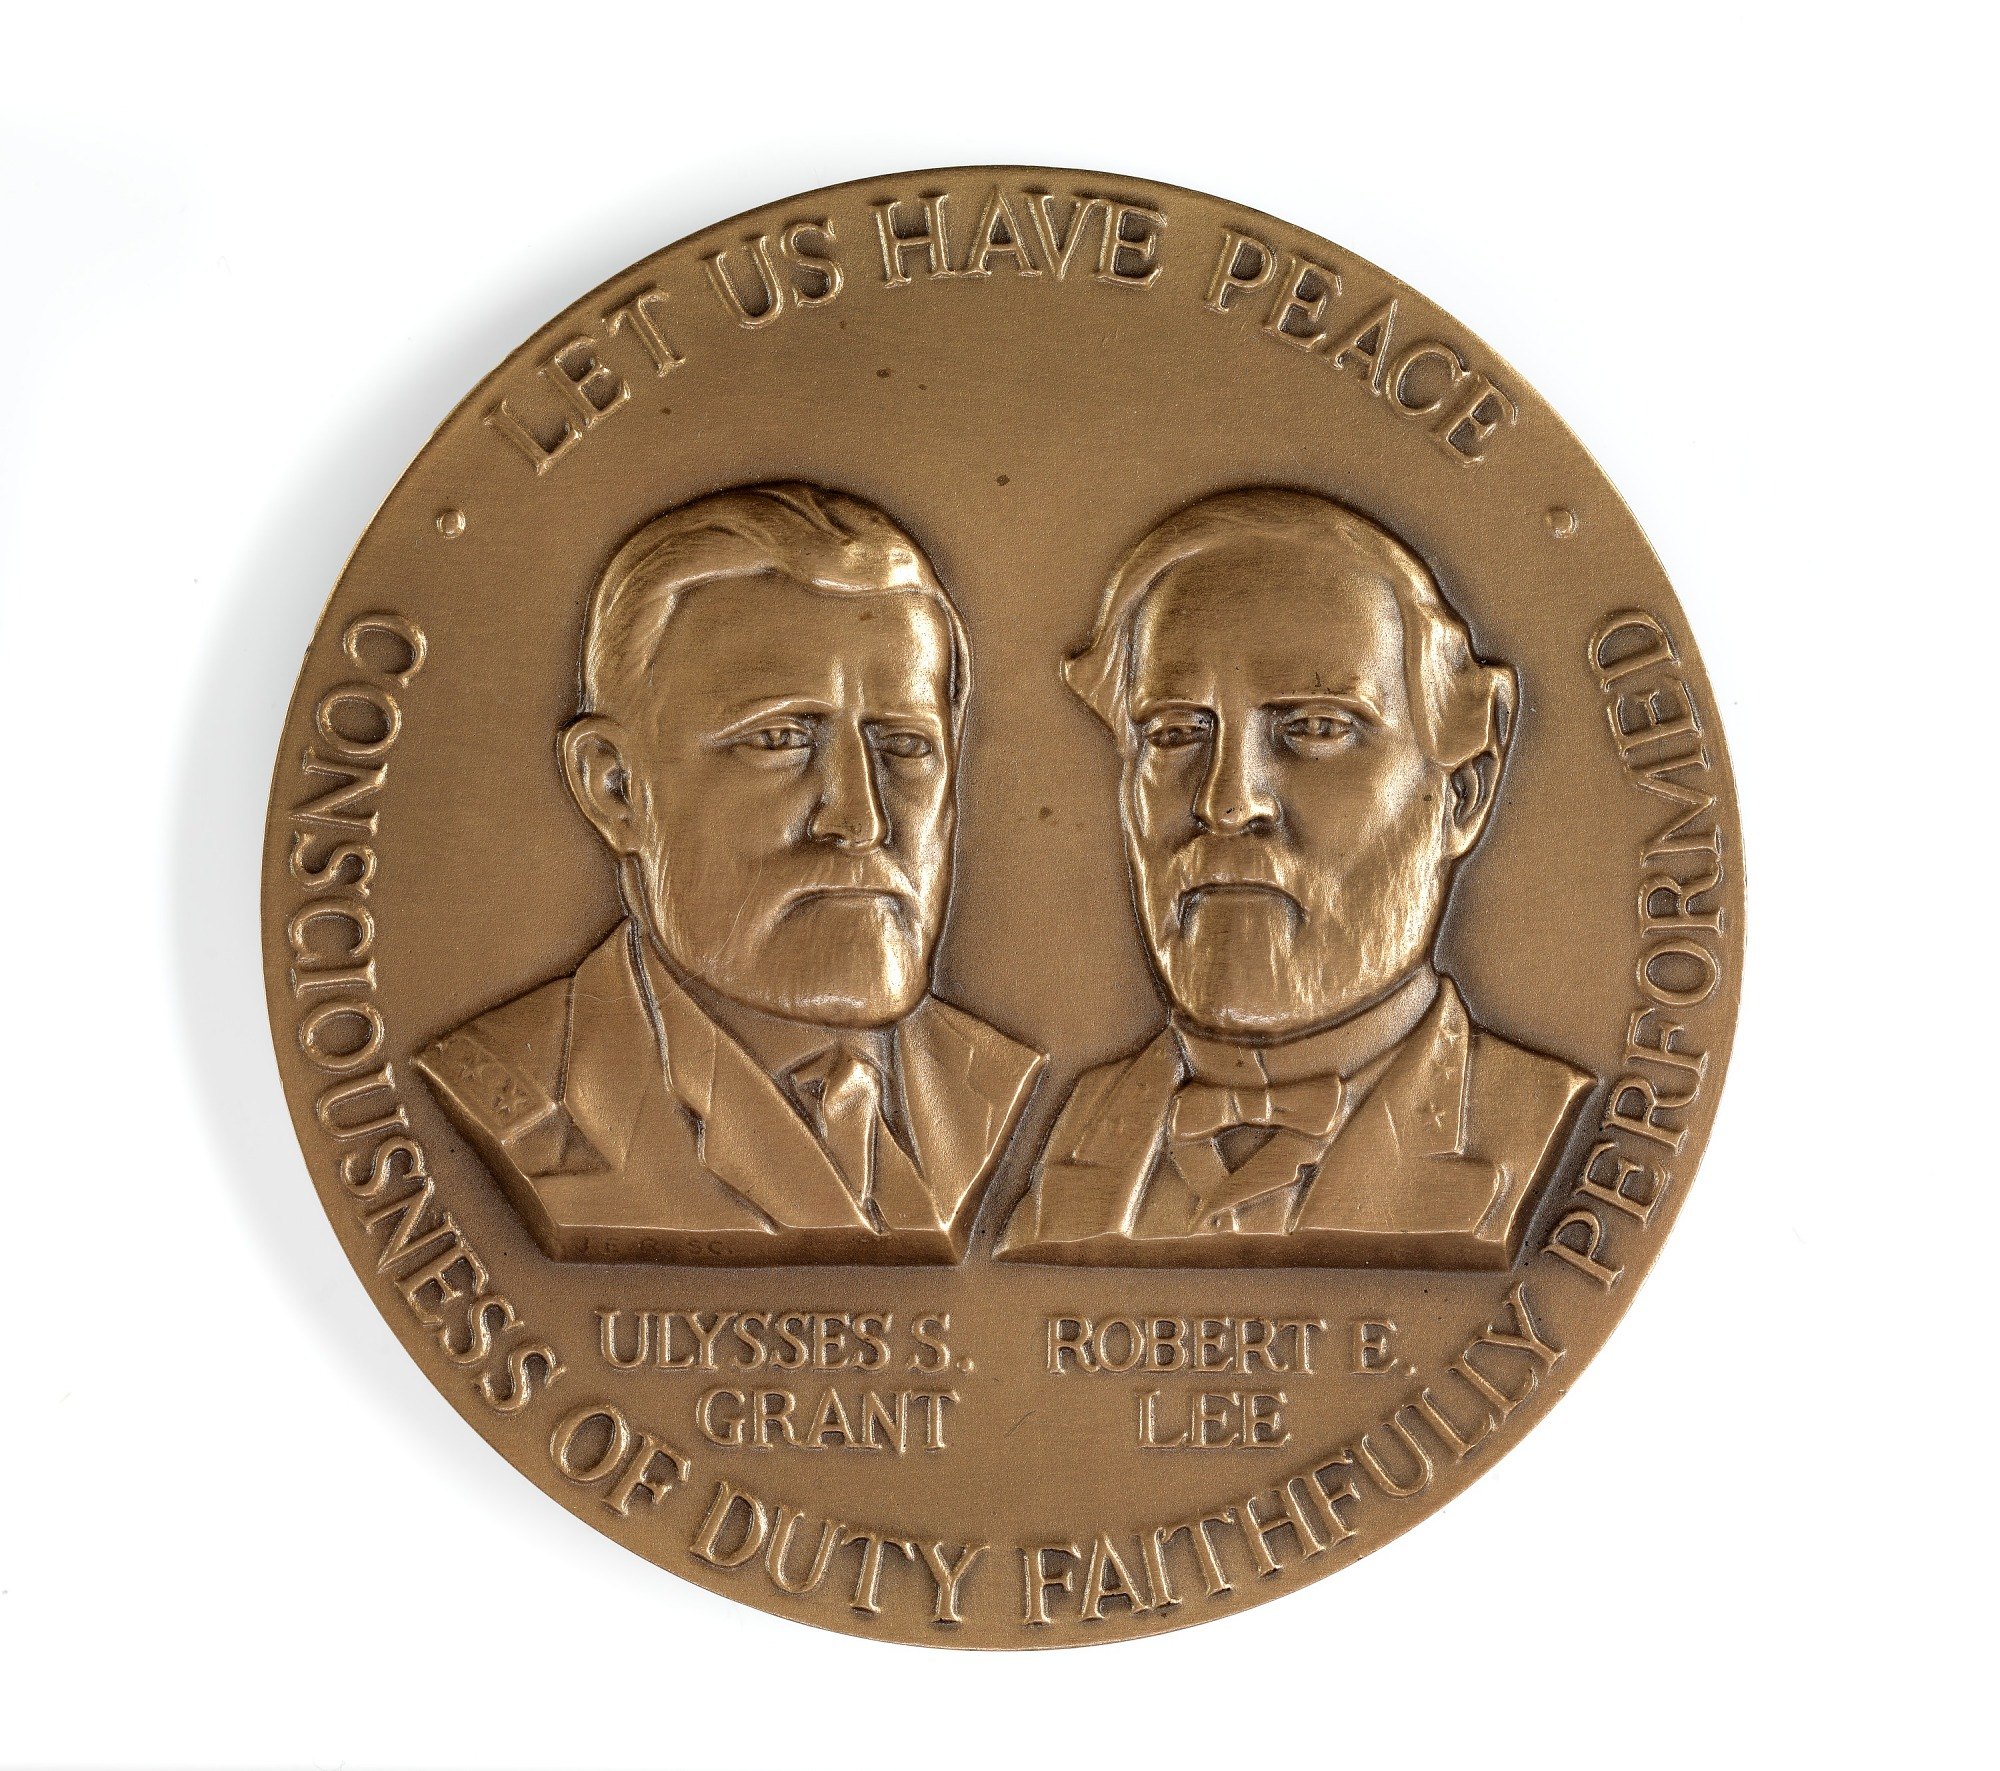 Civil War Centennial Award Medal